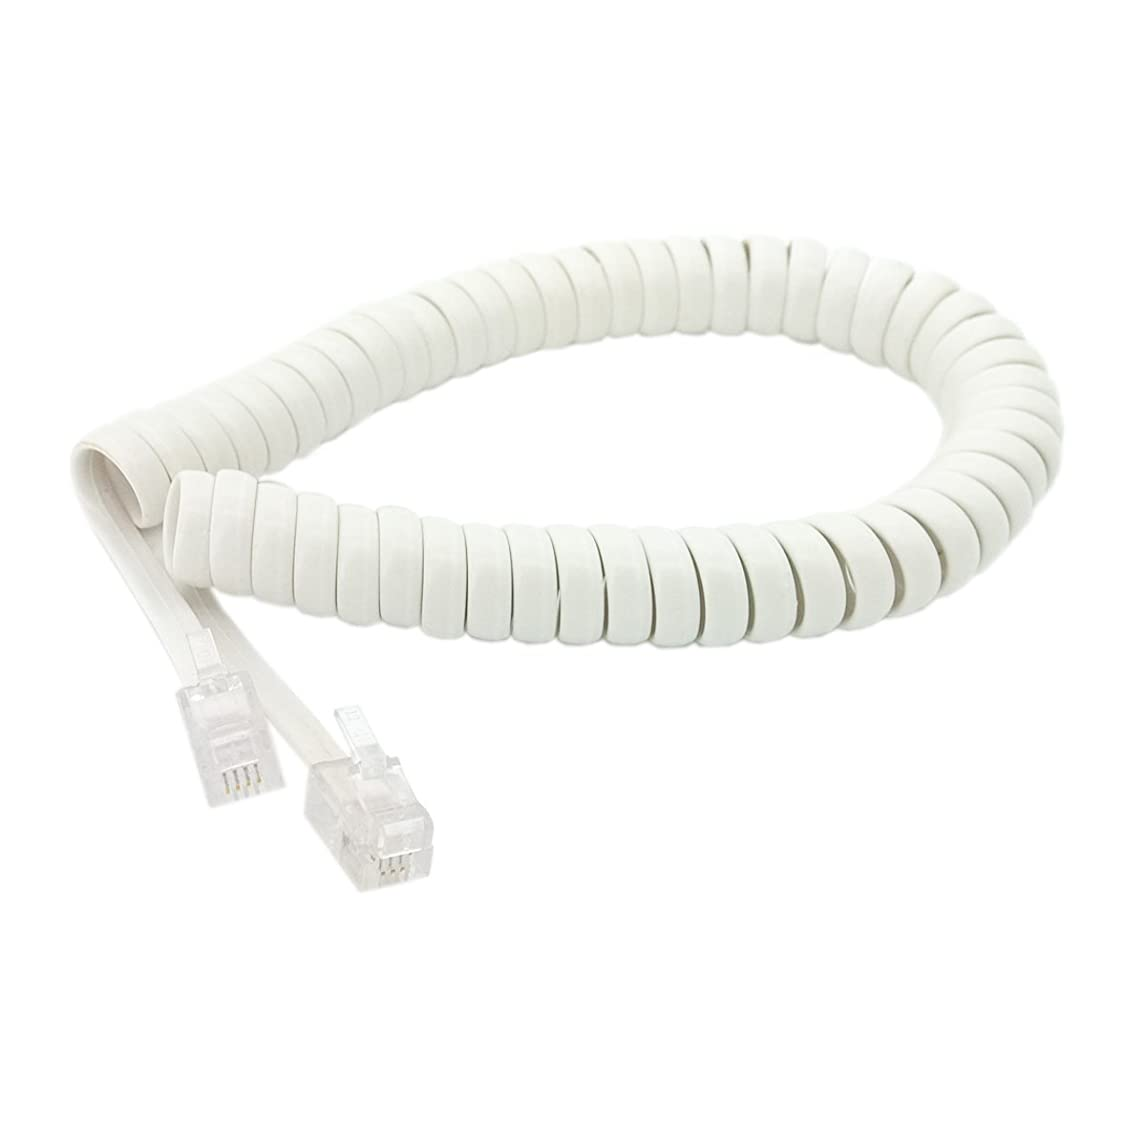 Handset Cord, Telephone Handset Coiled Cable Telephone Spiral Cable 6ft White jedow09295475381